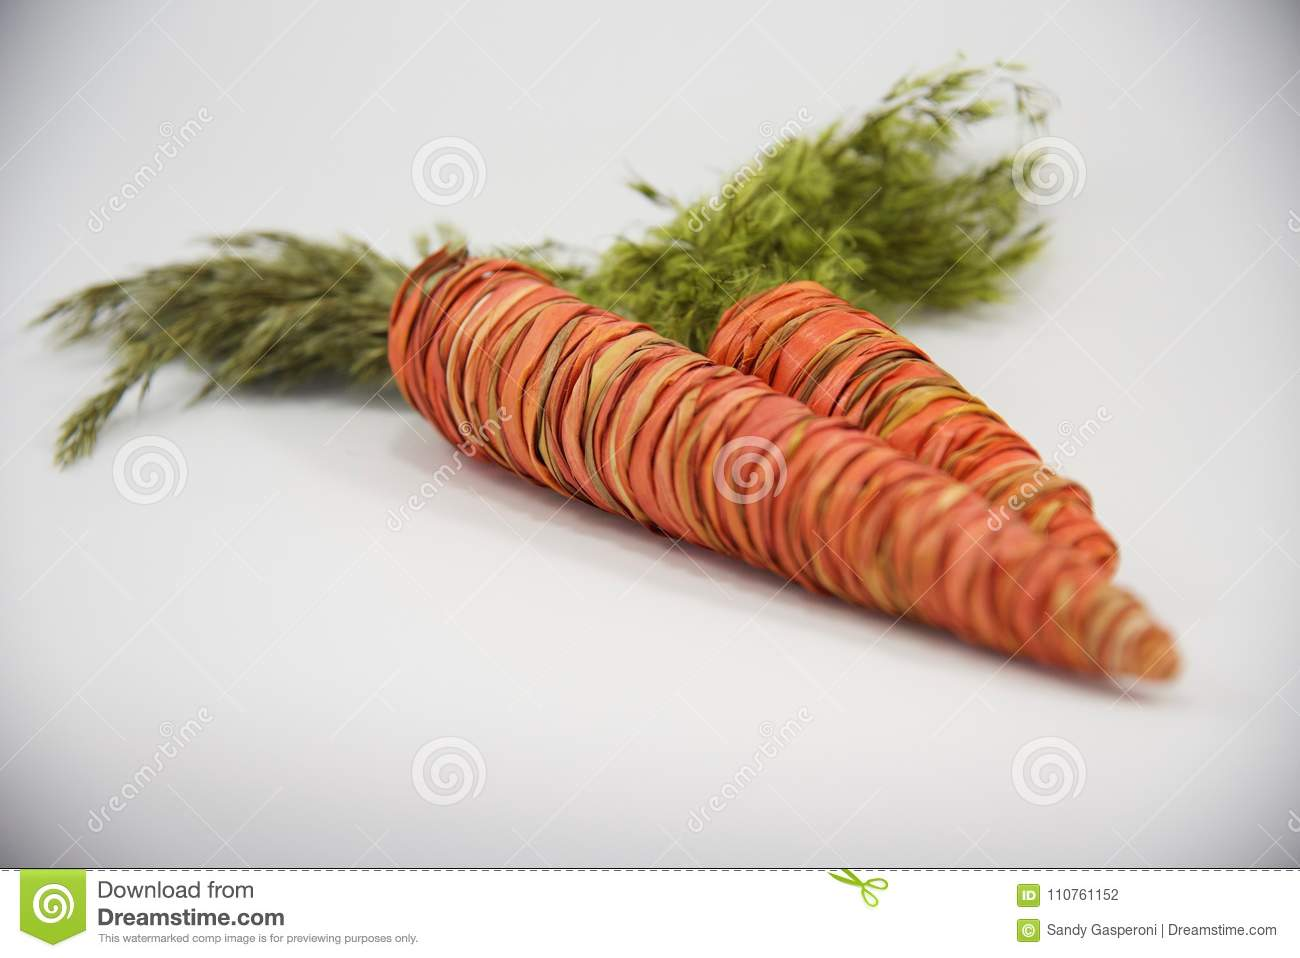 Easter Straw Decorative Carrots Greeting Card Stock Photo   Image ...